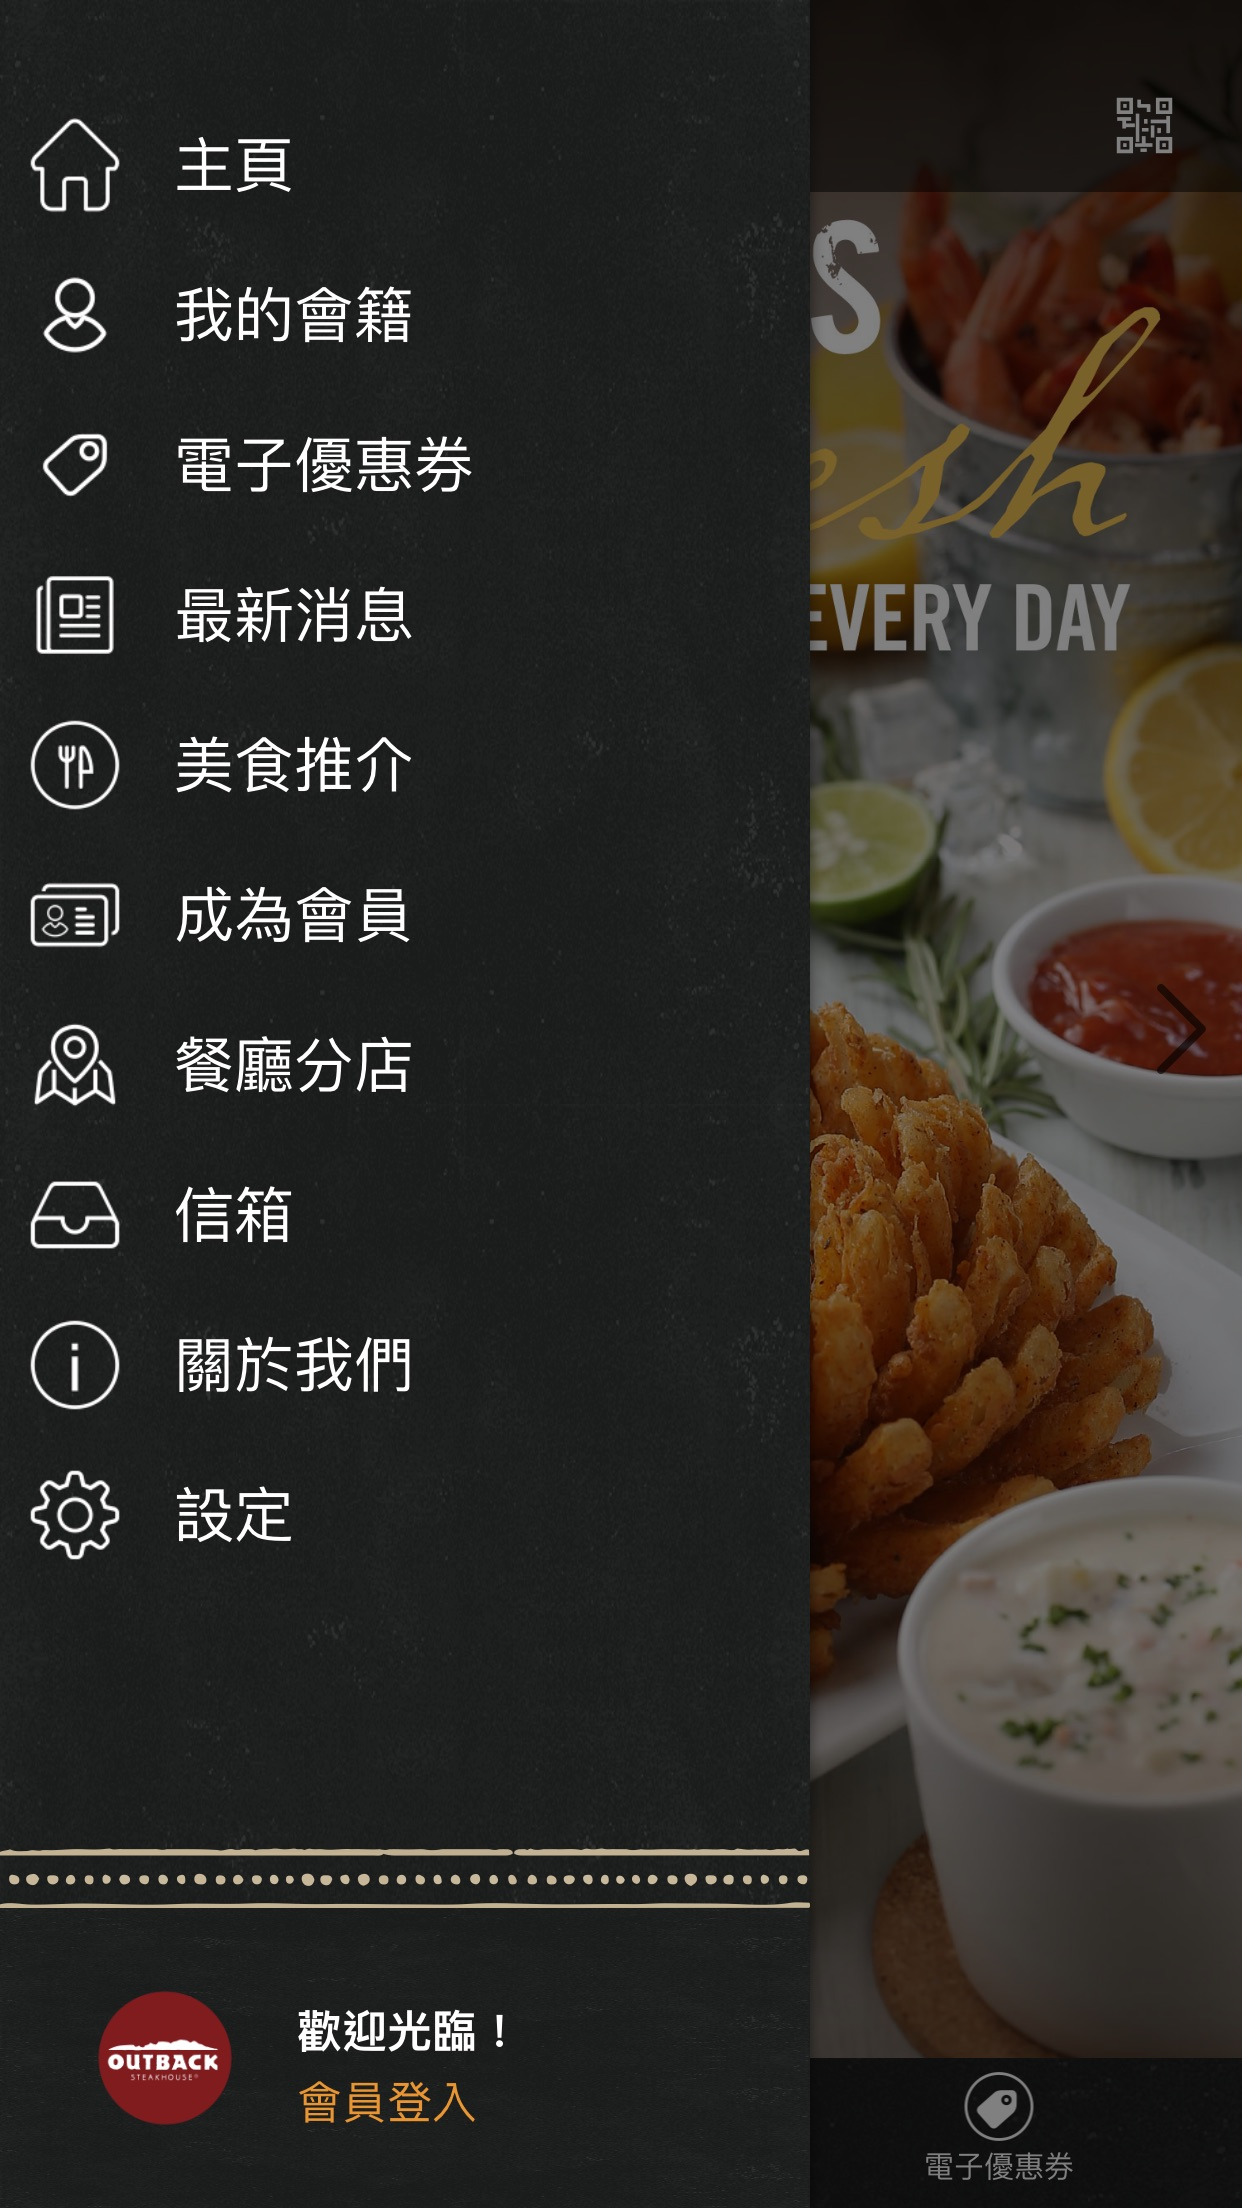 Outback Steakhouse Hong Kong Screenshot